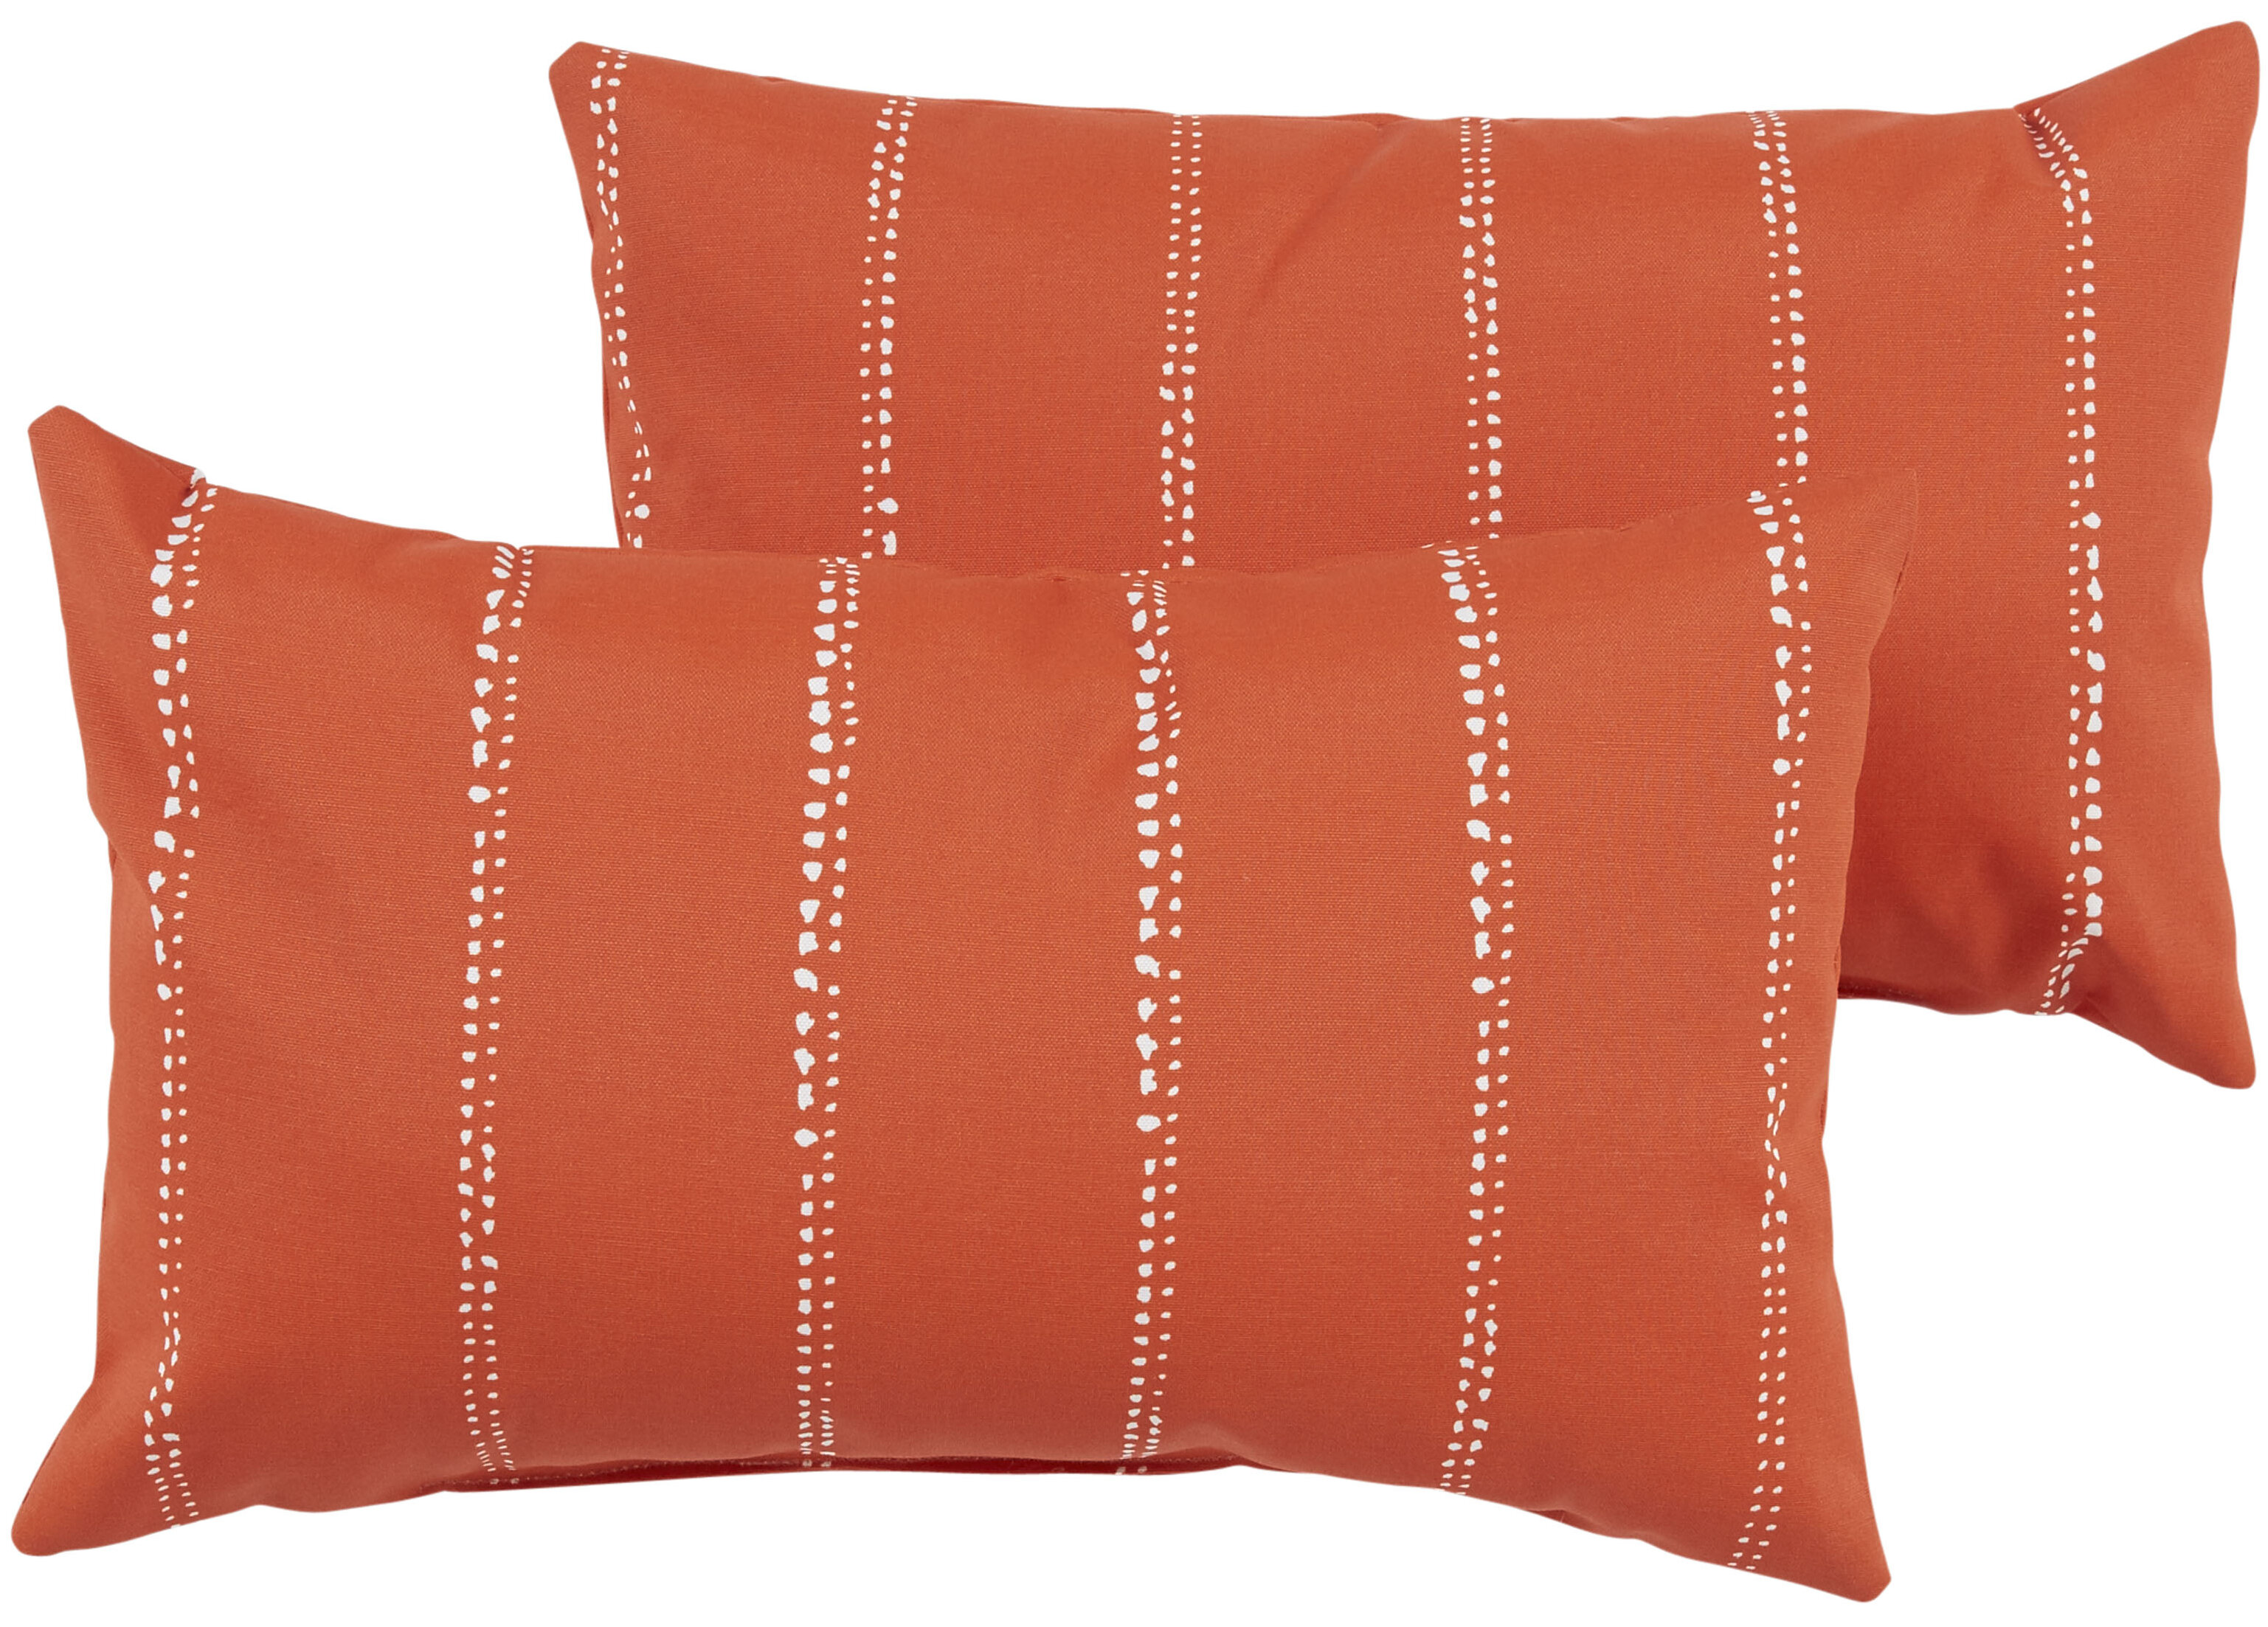 shipping crimson sunset humble garden set pillows outdoor of overstock and lumbar free sunbrella stripe dupione product indoor pillow today astoria home small haute flange